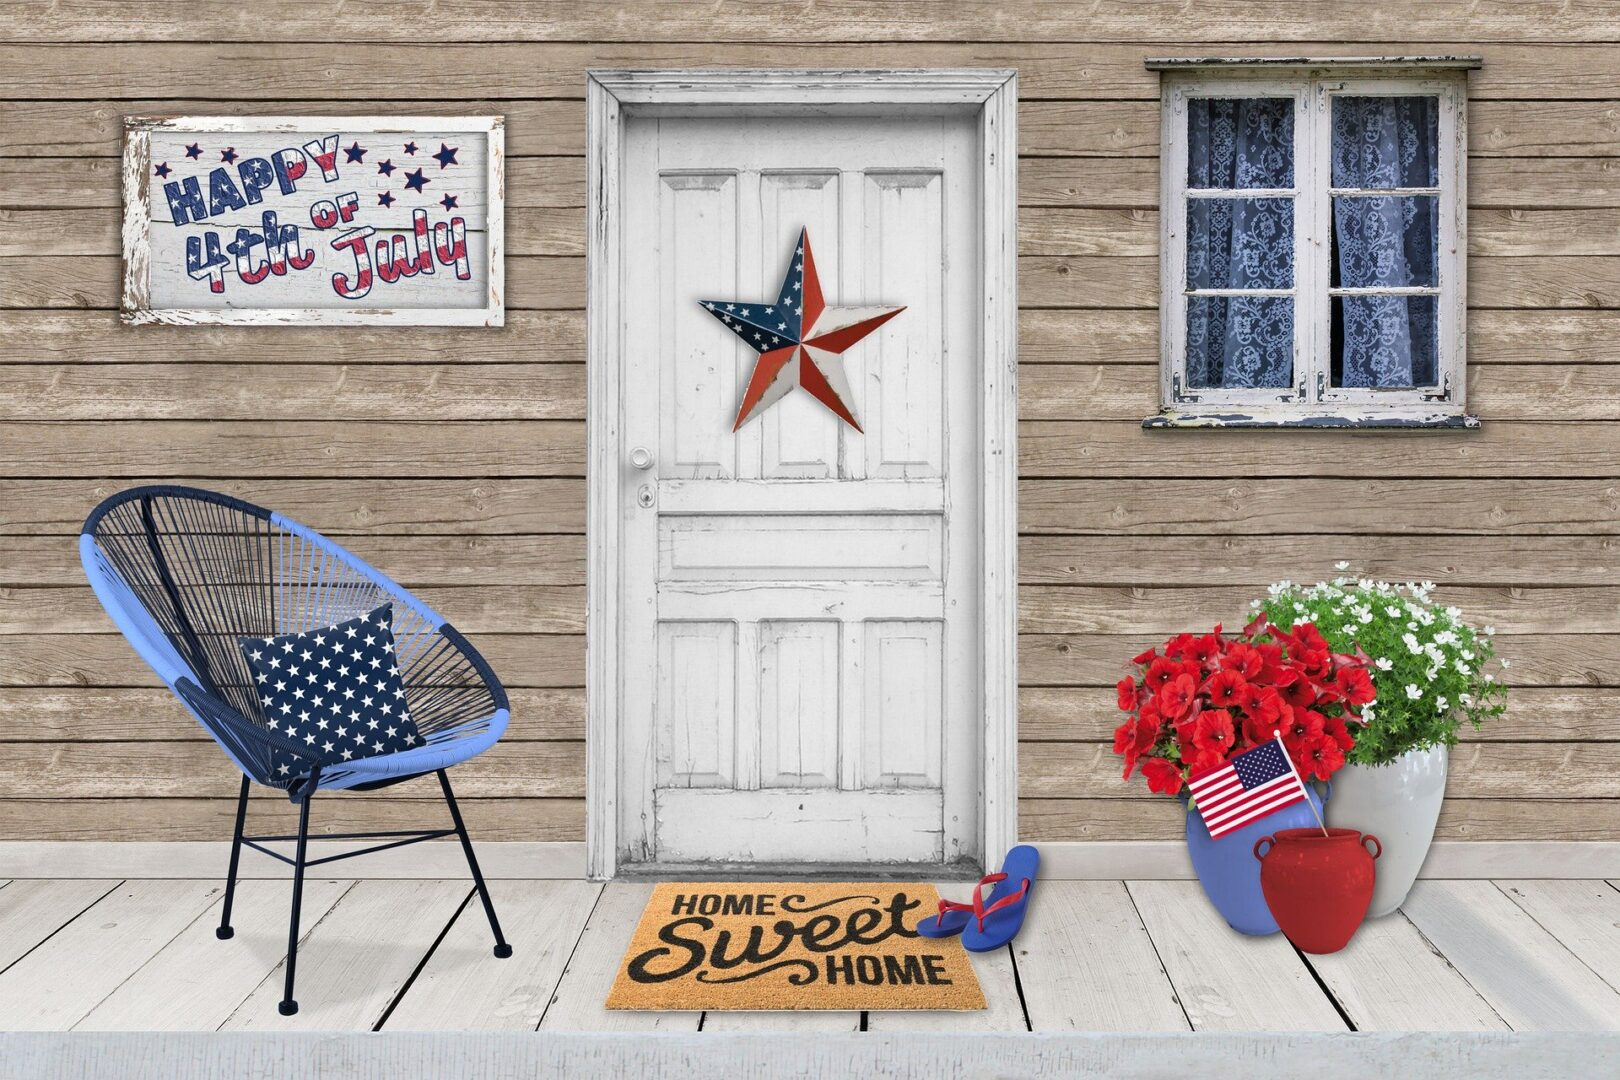 Doorfront with July 4th flags and signs